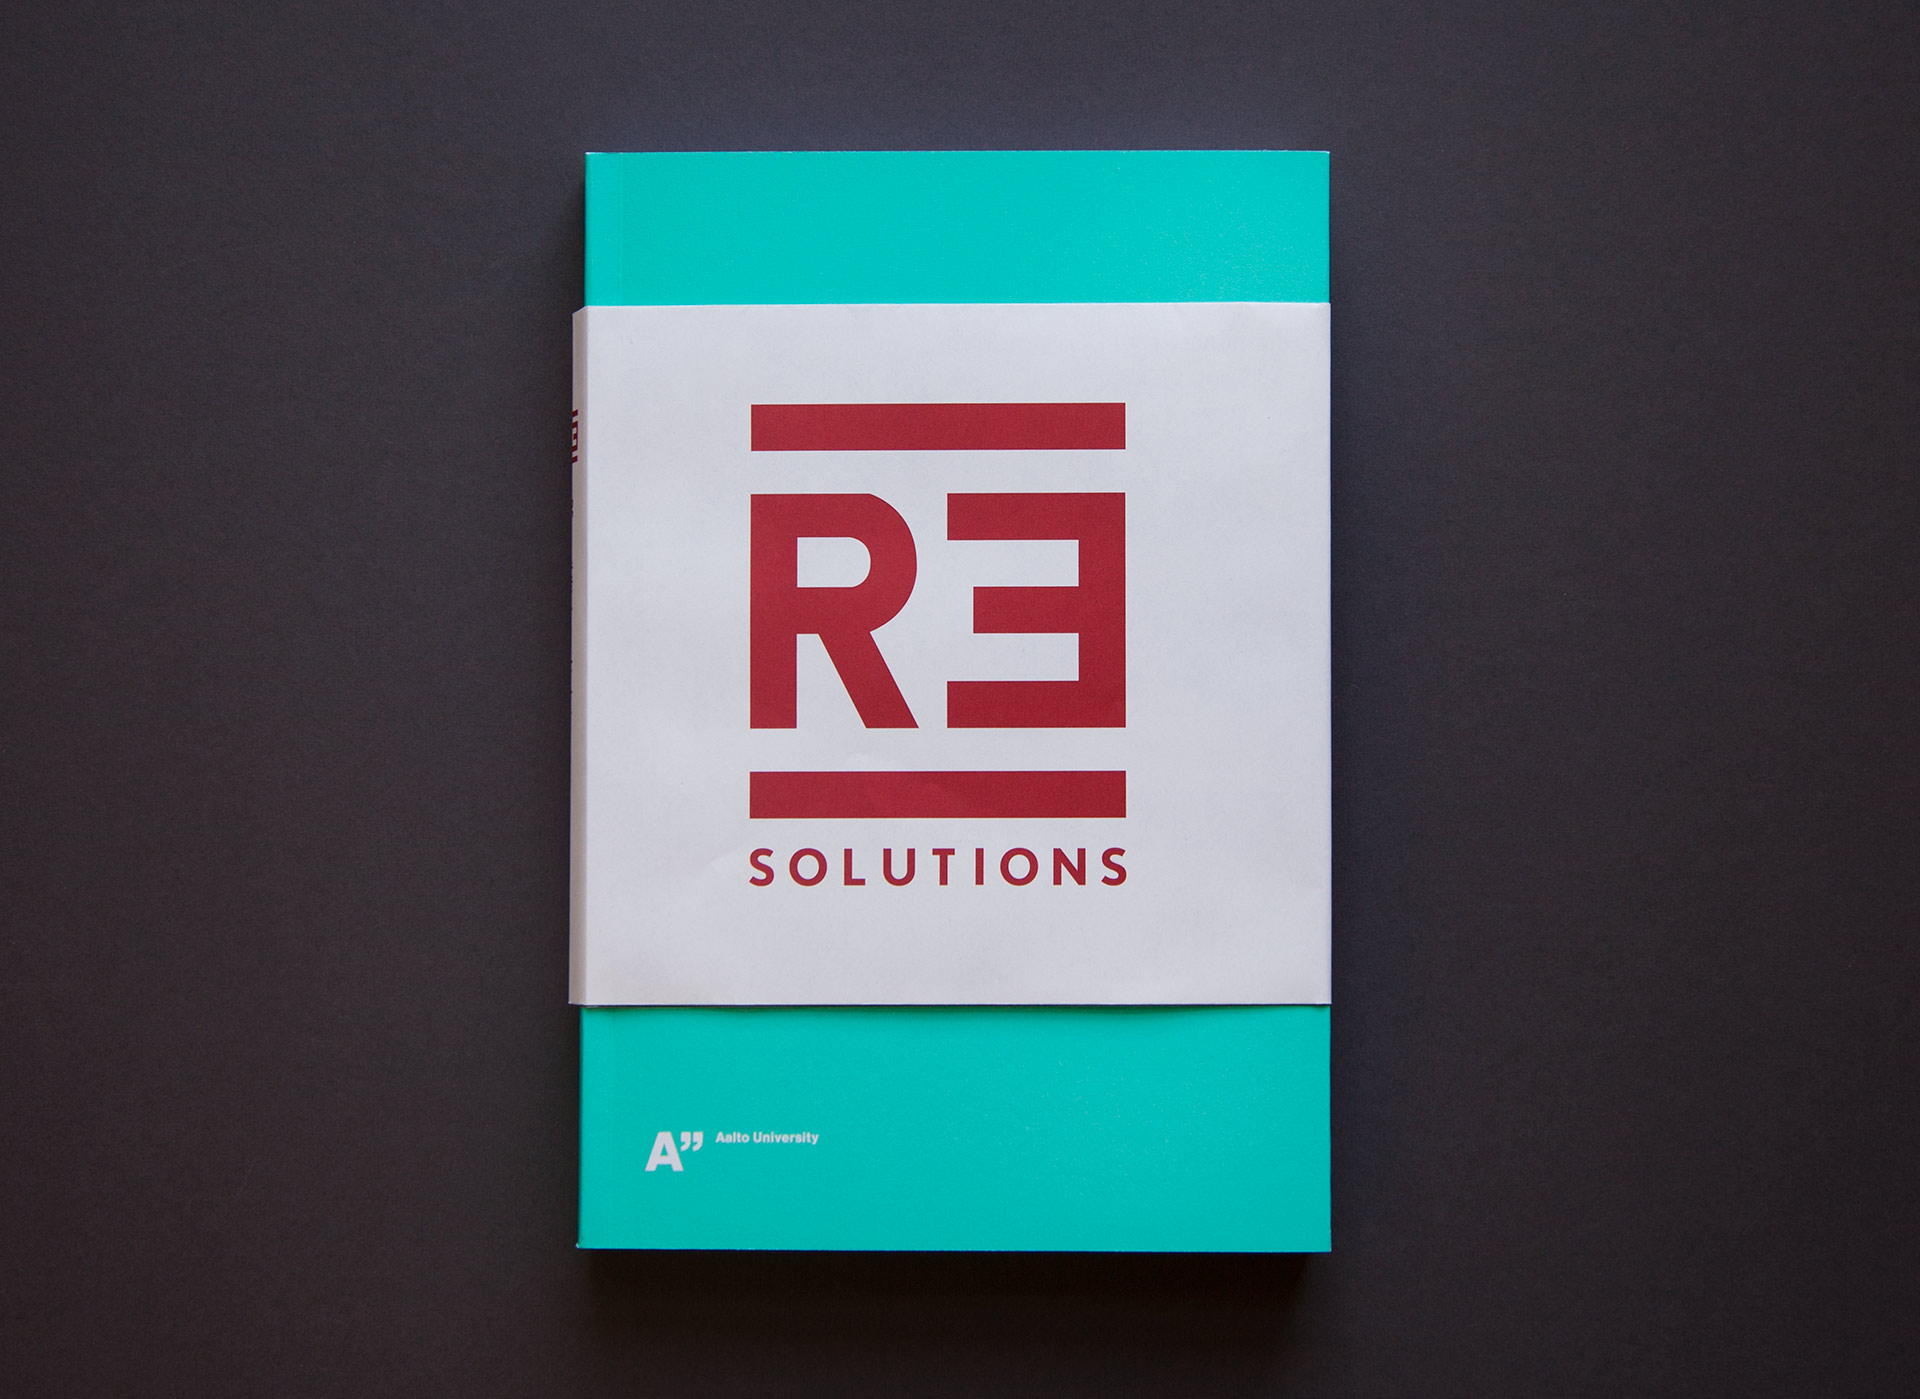 REsolutions_book_1_1920px